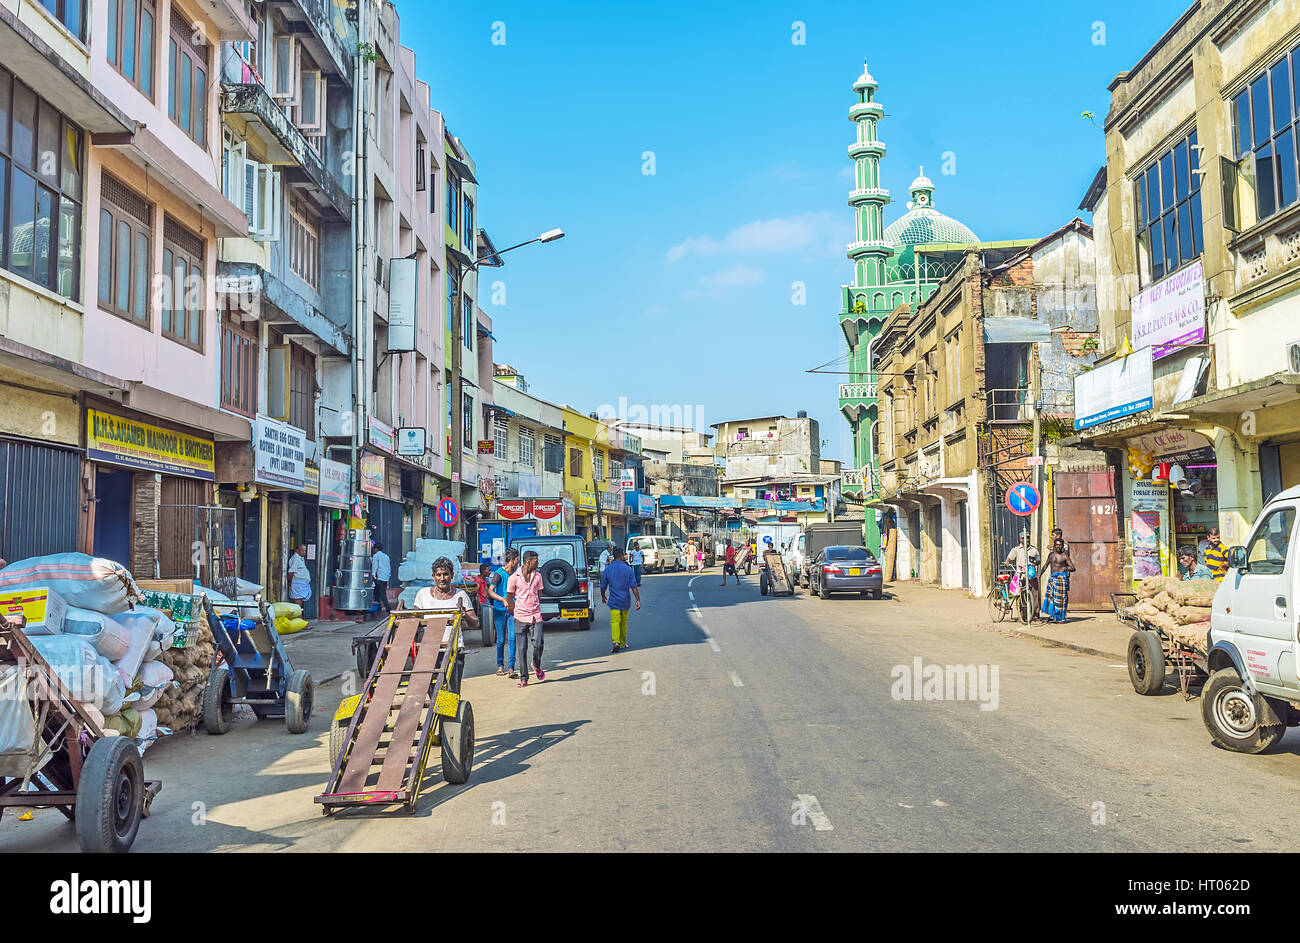 COLOMBO, SRI LANKA - DECEMBER 6, 2016: The former Wolfendhal street of Pettah, occupied with stores and warehouses, Stock Photo